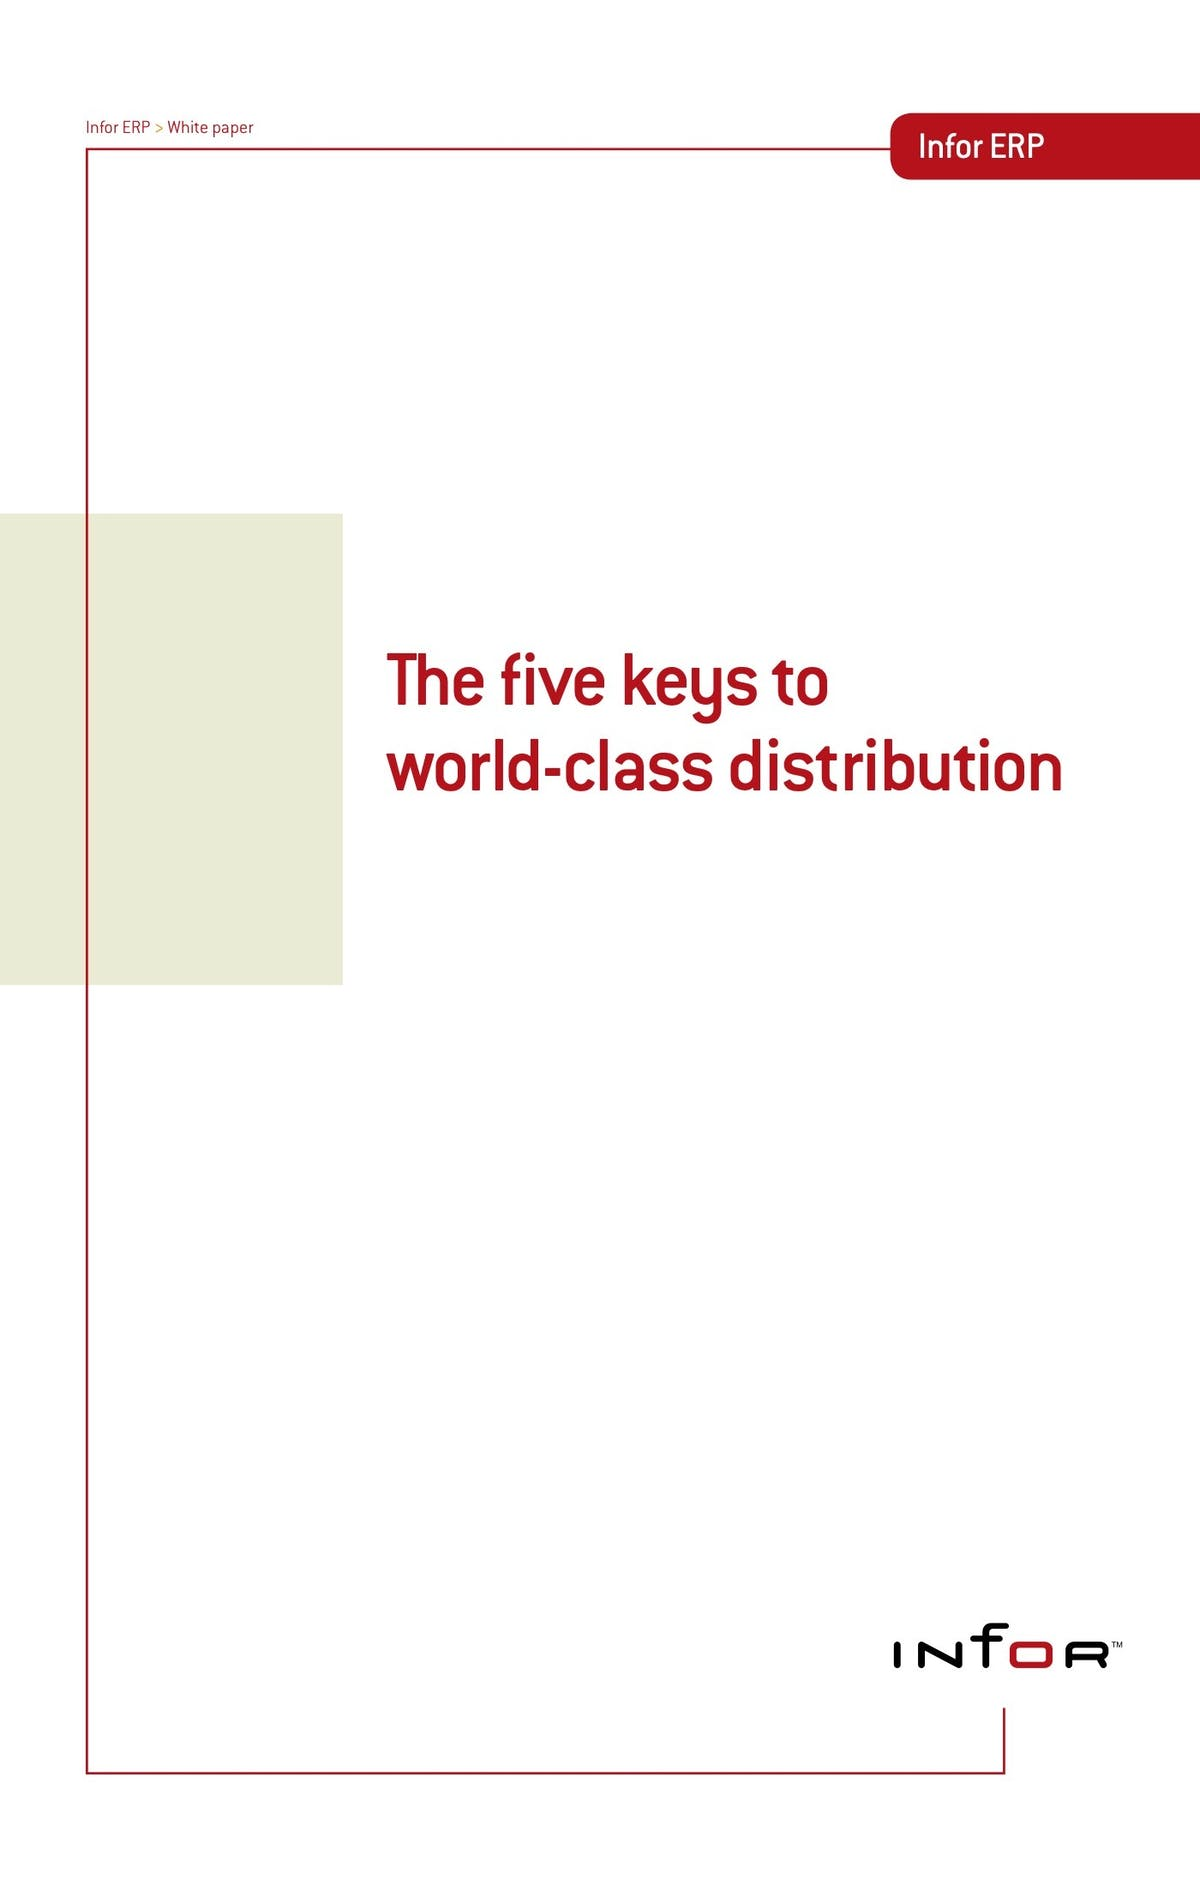 Infor Distribution SX.e White Paper - The Five Keys to World Class Distribution